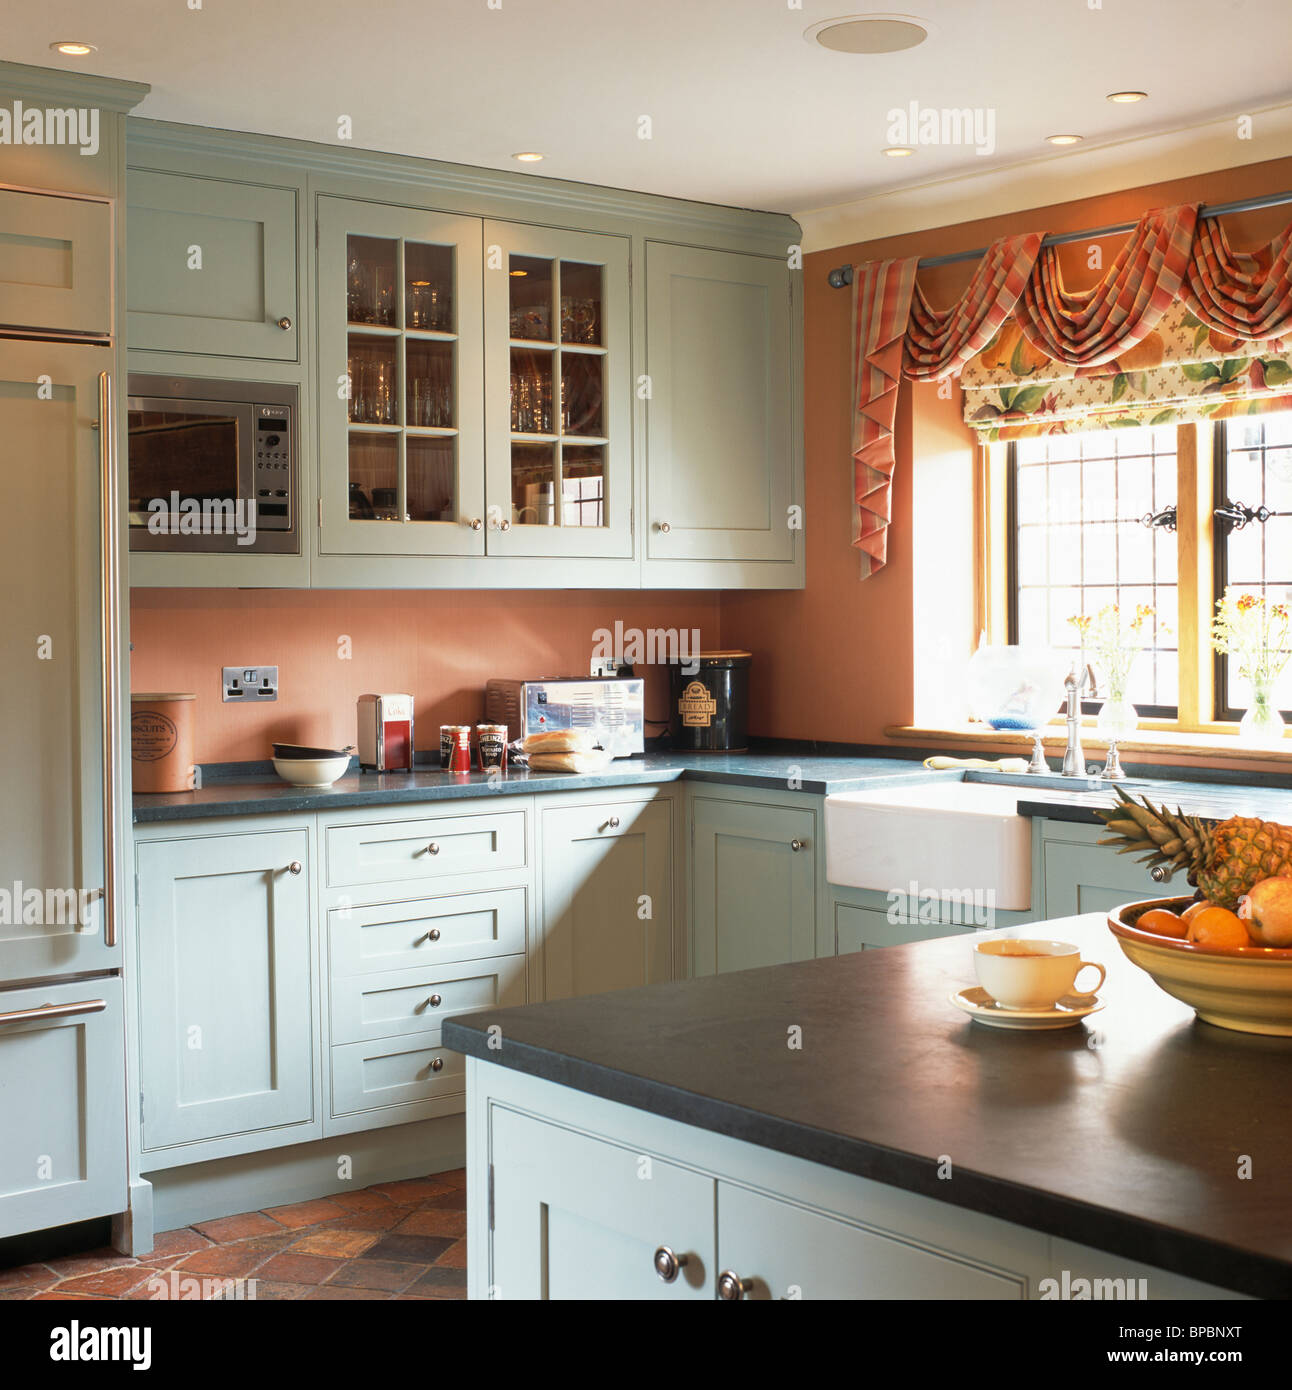 Granite Worktops For Kitchens Pastel Blue Fitted Units With Granite Worktops In Terracotta